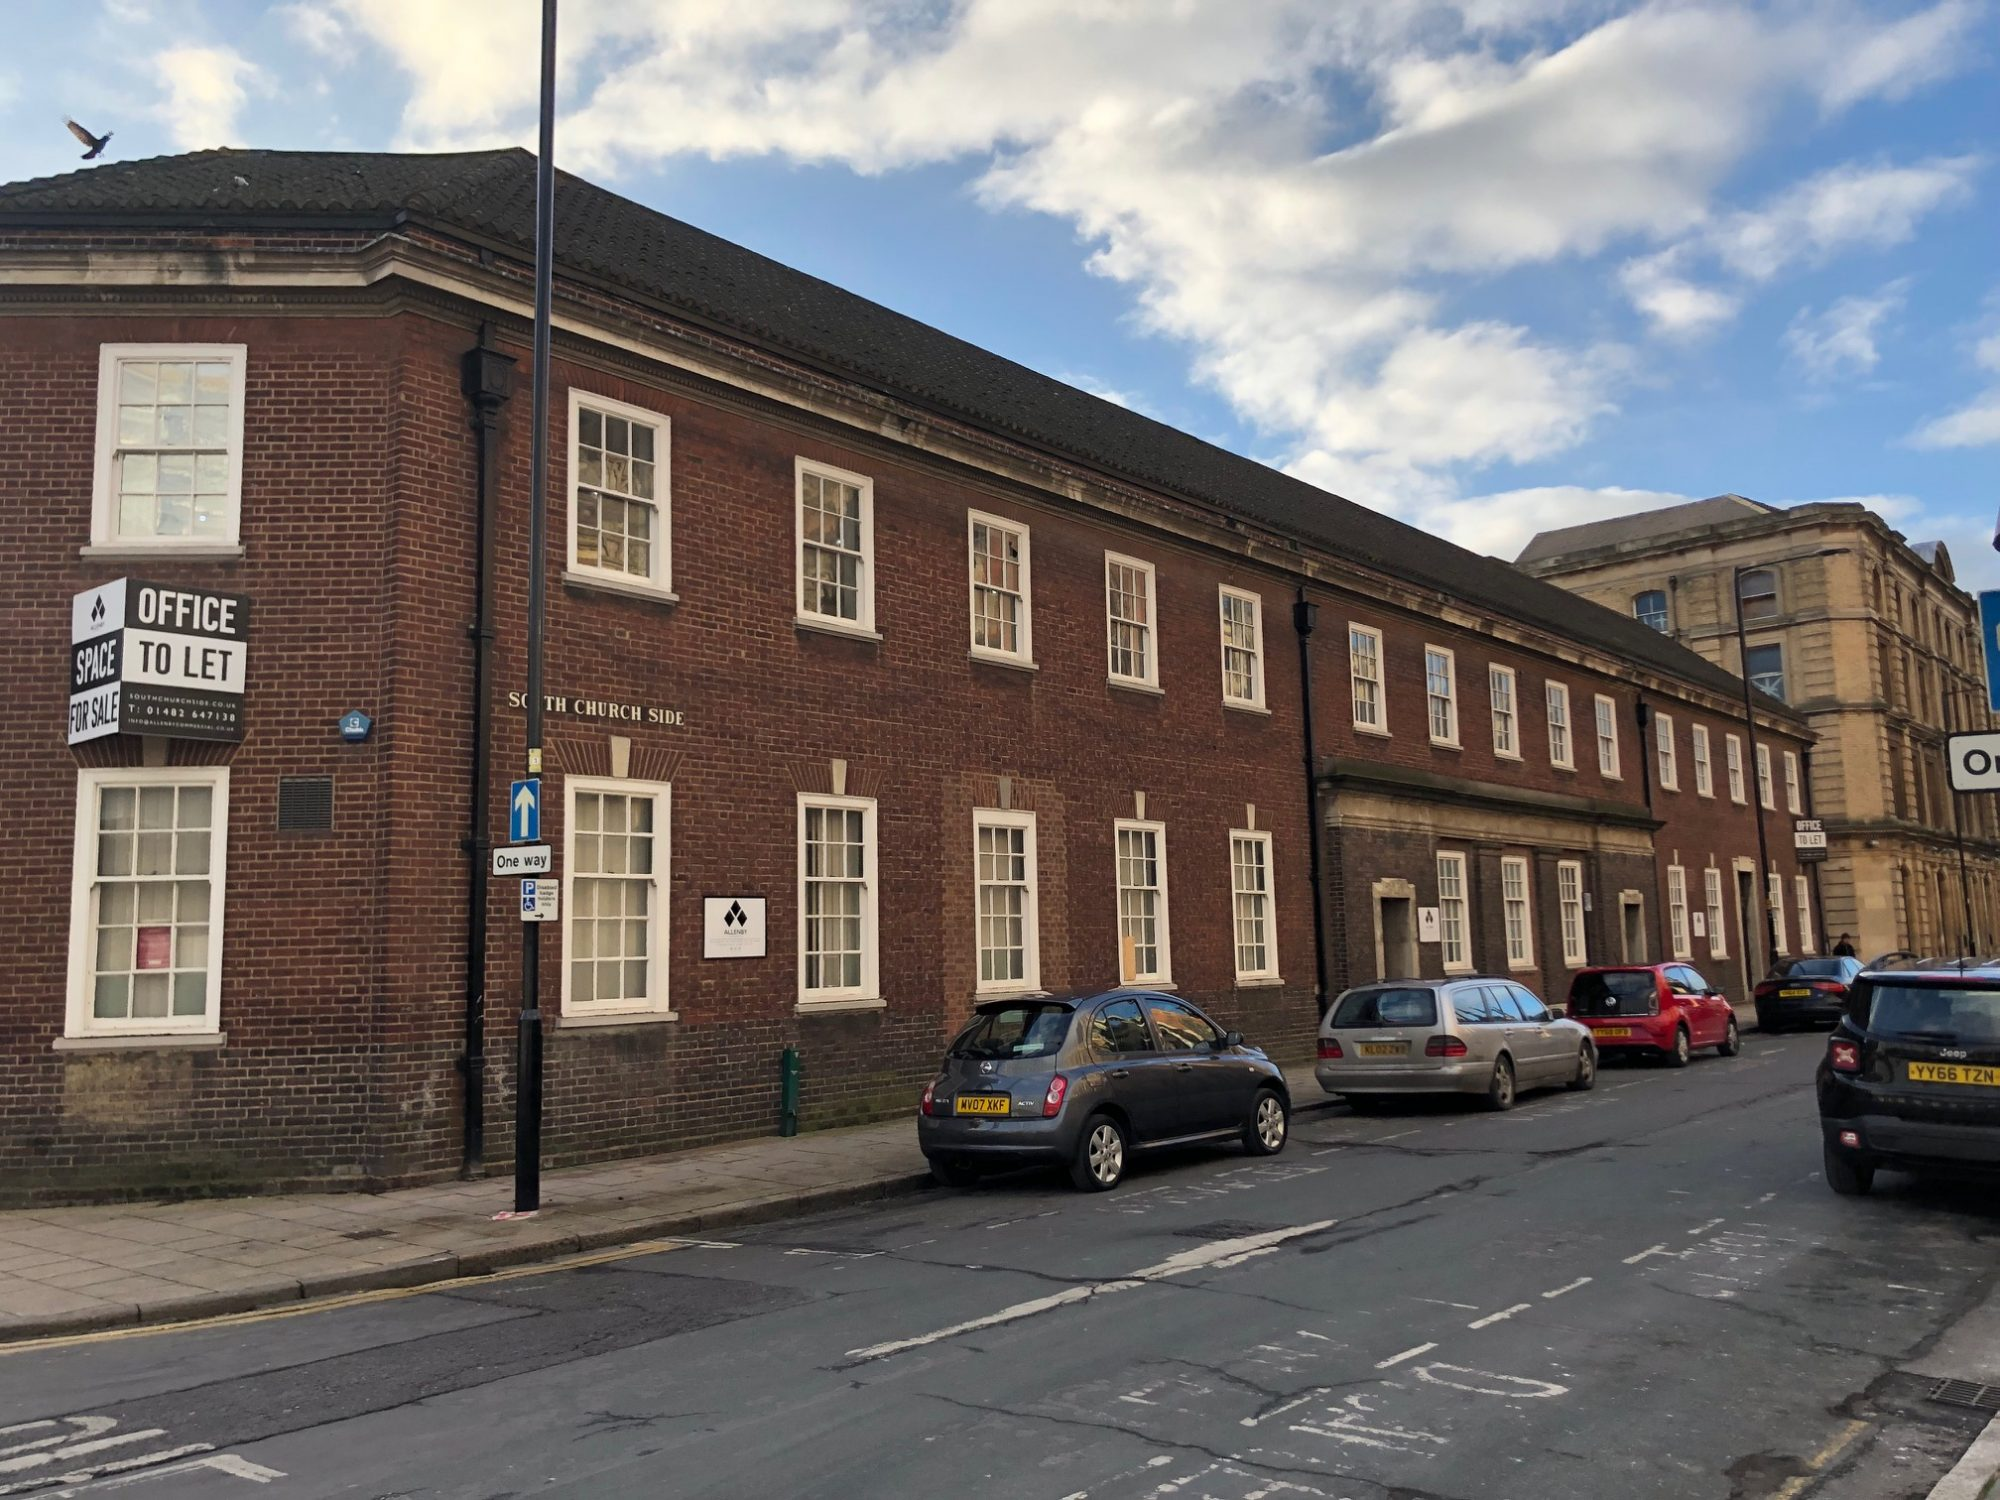 offices to rent hull, commercial property hull, commercial buildings for sale hull